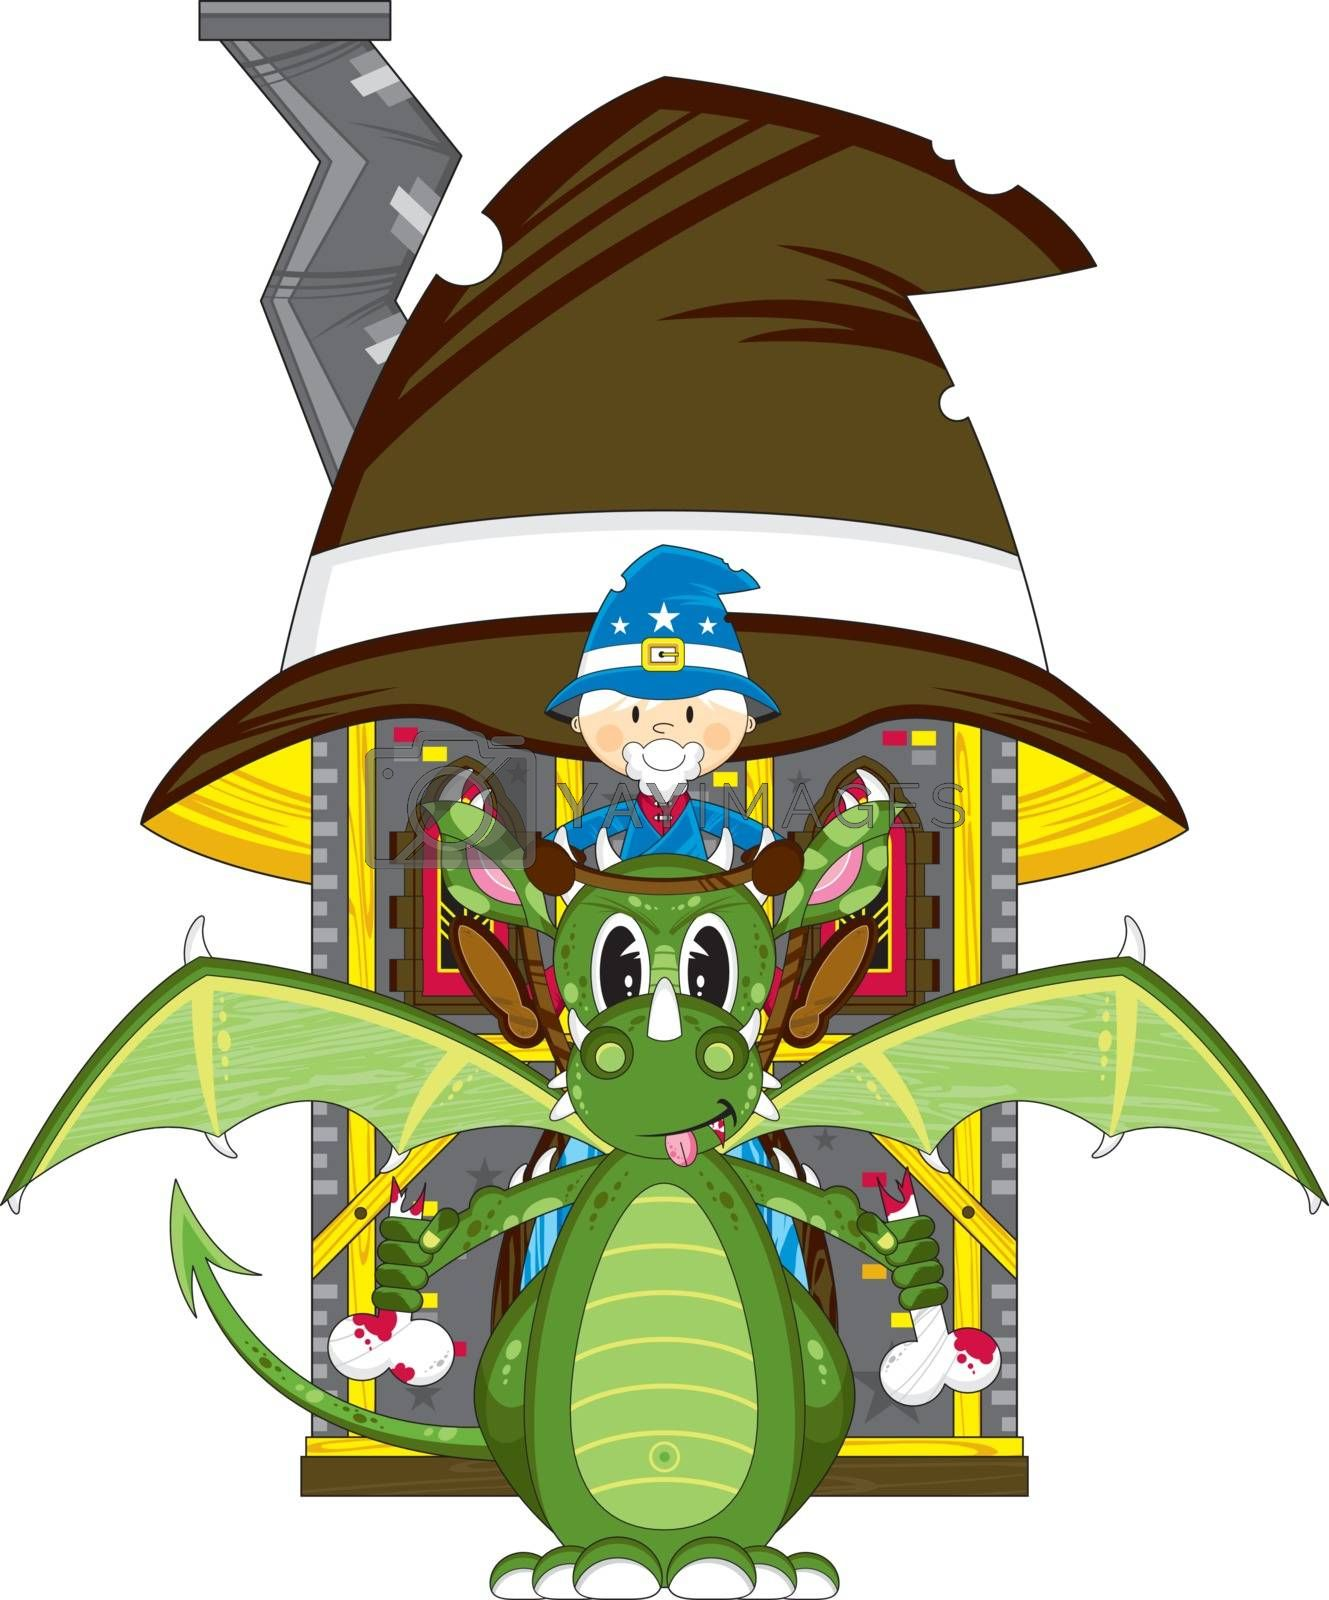 Cartoon Wizard on Dragon and House - Vector Illustration - By Mark Murphy Creative